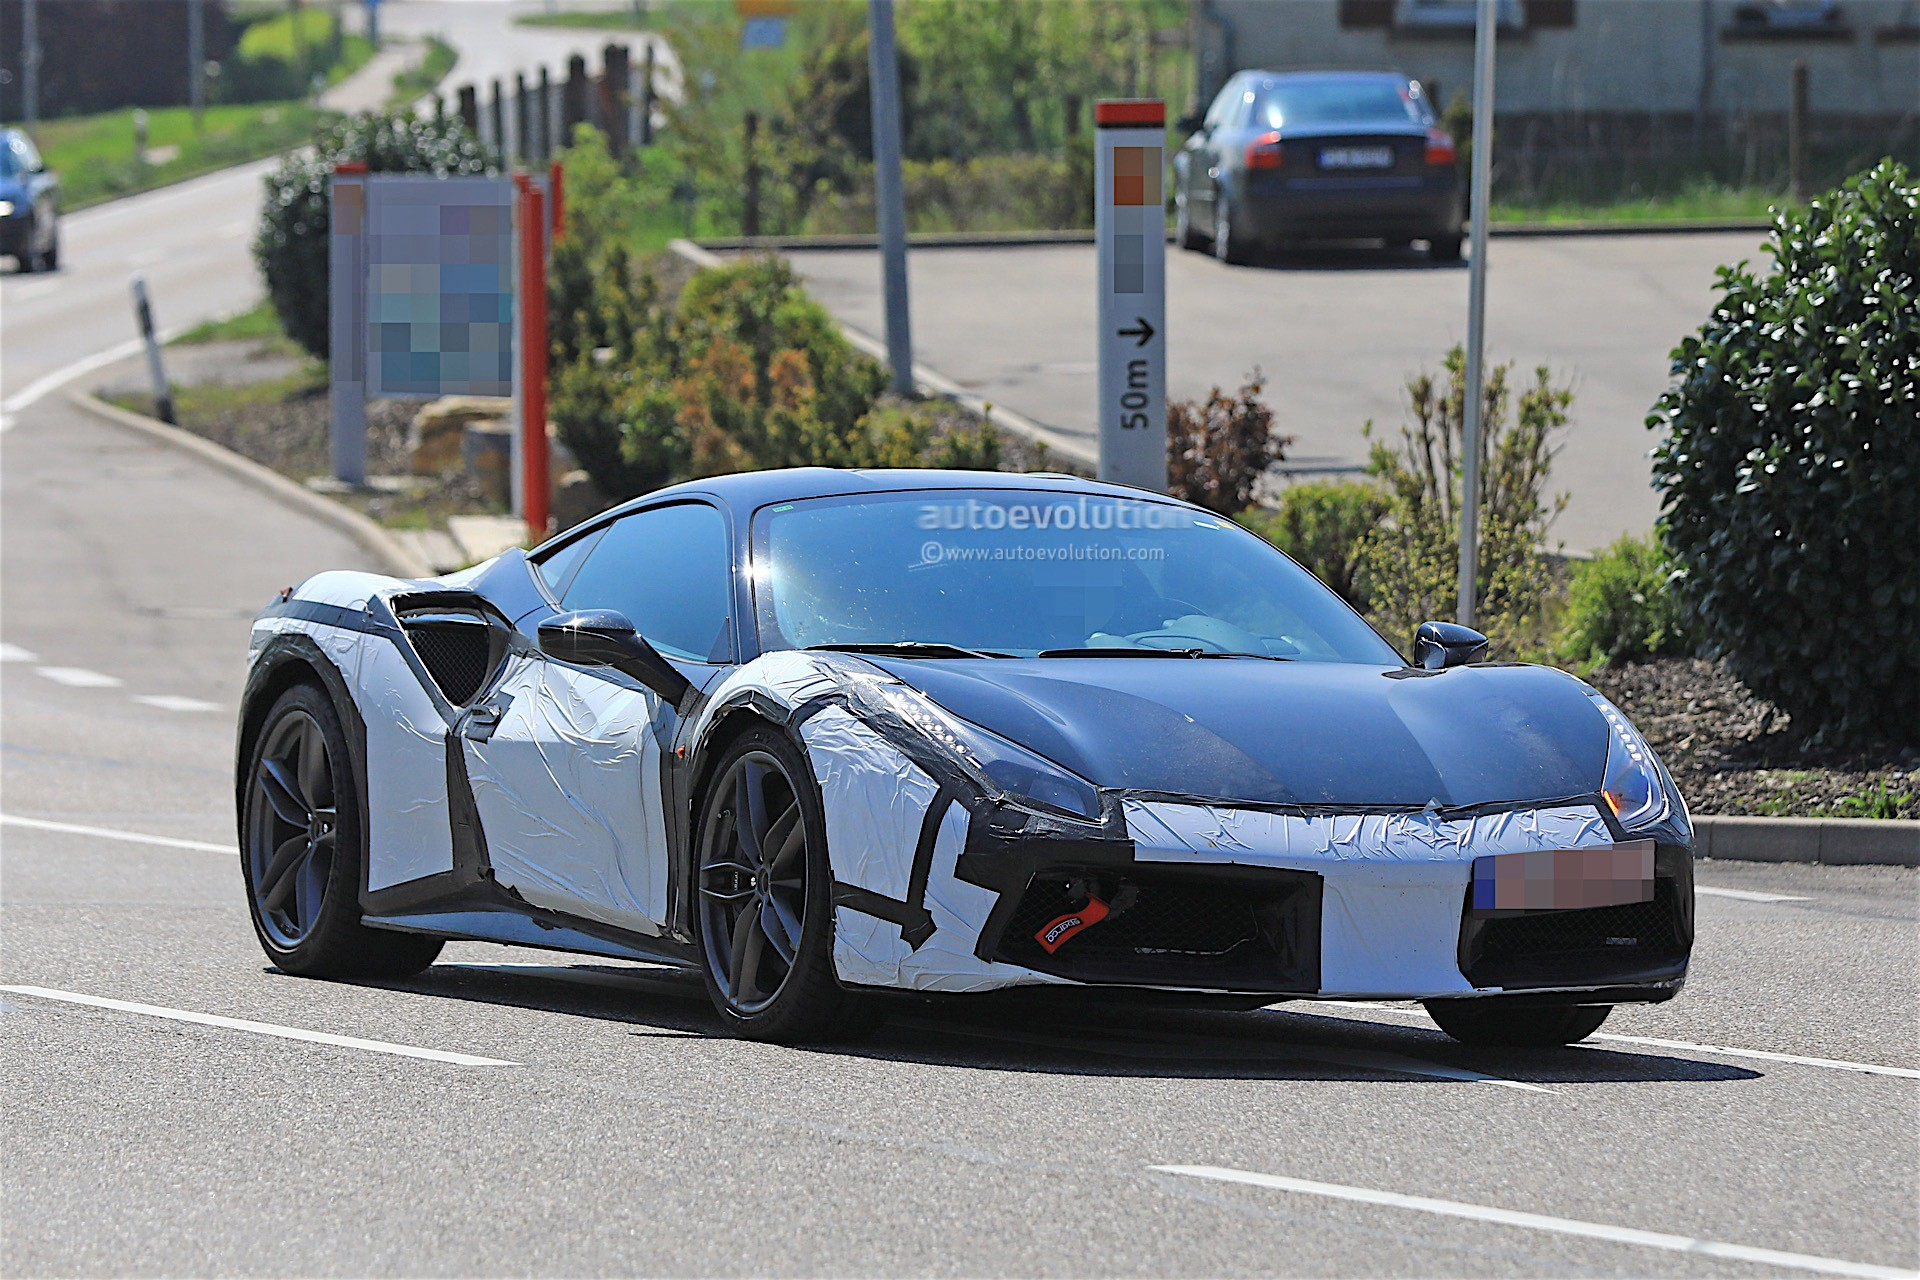 2019 Ferrari Prototype Spotted Testing With 488 GTB-Based ...